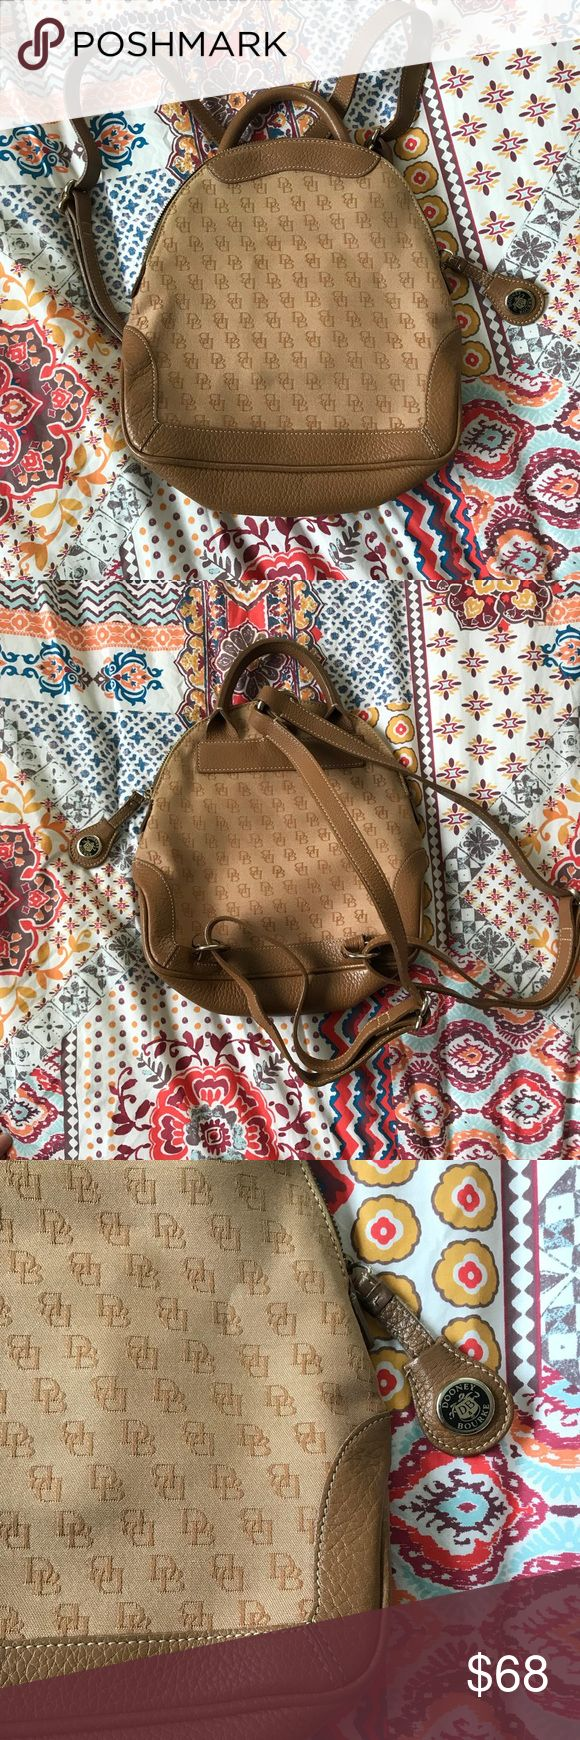 F I N A L • S A L E Dooney & Bourke Backpack Authentic Vintage Dooney & Bourke Tan/Camel Backpack. In wonderful condition! Dooney & Bourke Bags Backpacks